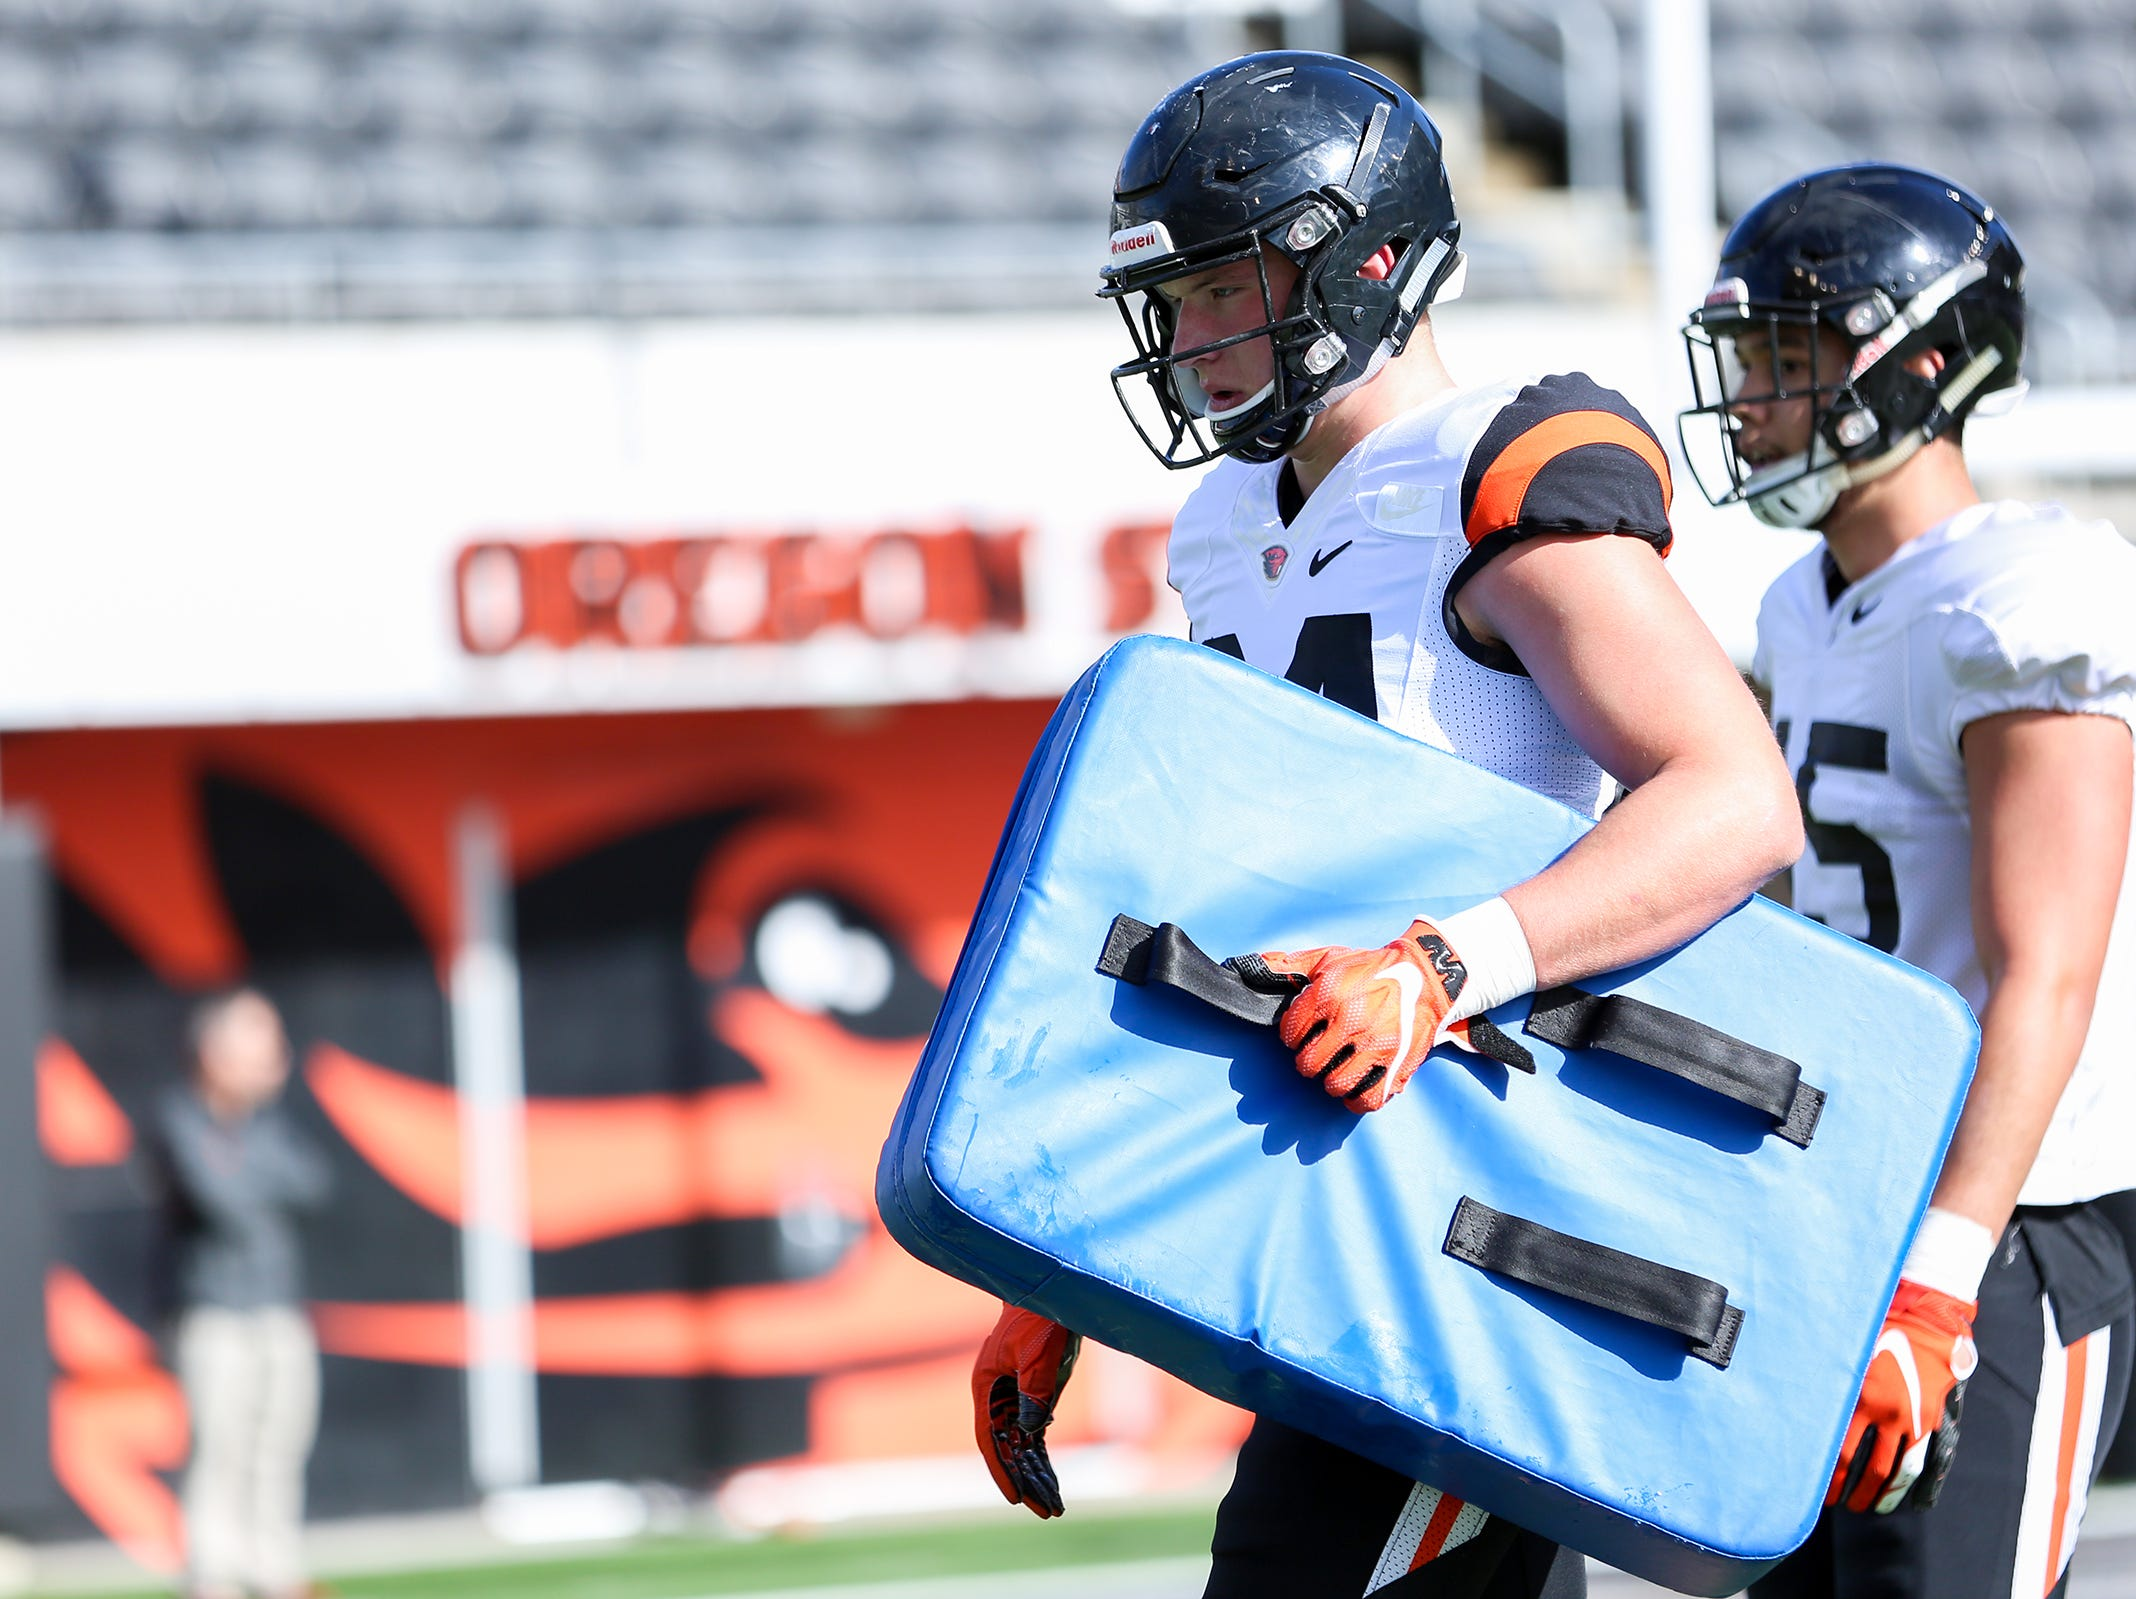 Oregon State University tight end Teagan Quitoriano (84) carries a blocking shield during practice at Oregon State University in Corvallis on April 9, 2019.